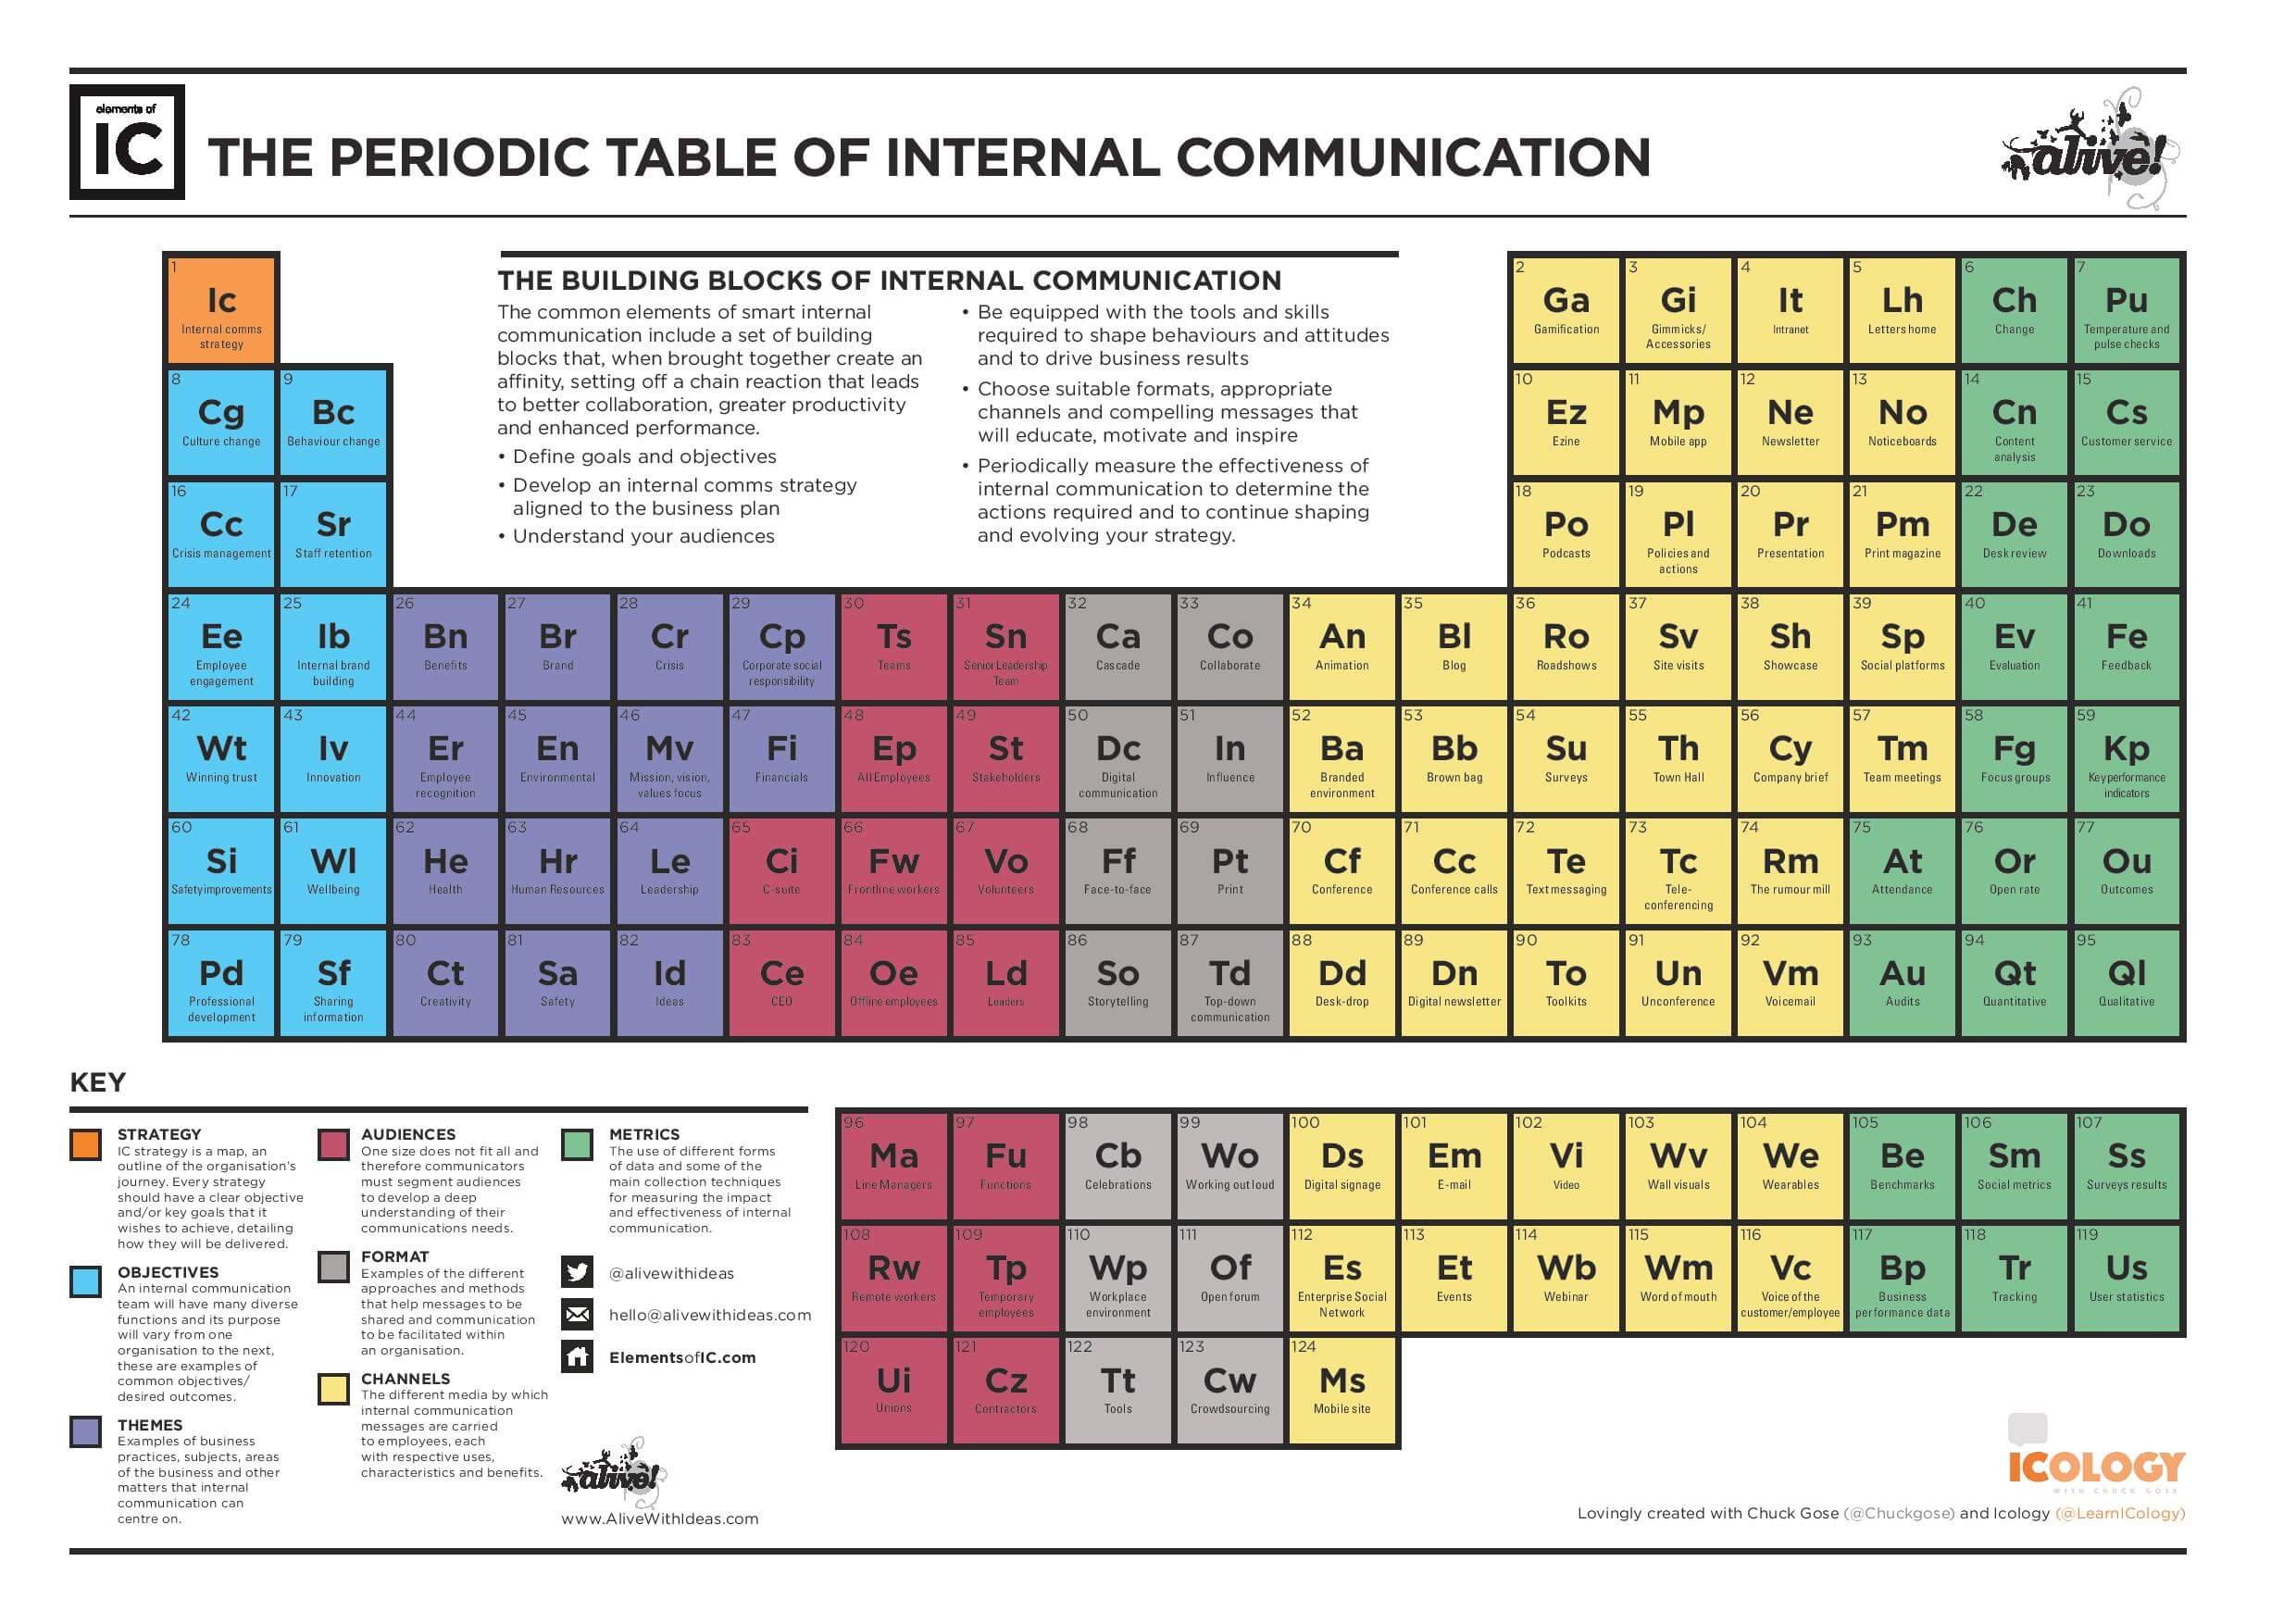 The periodic table of internal communications